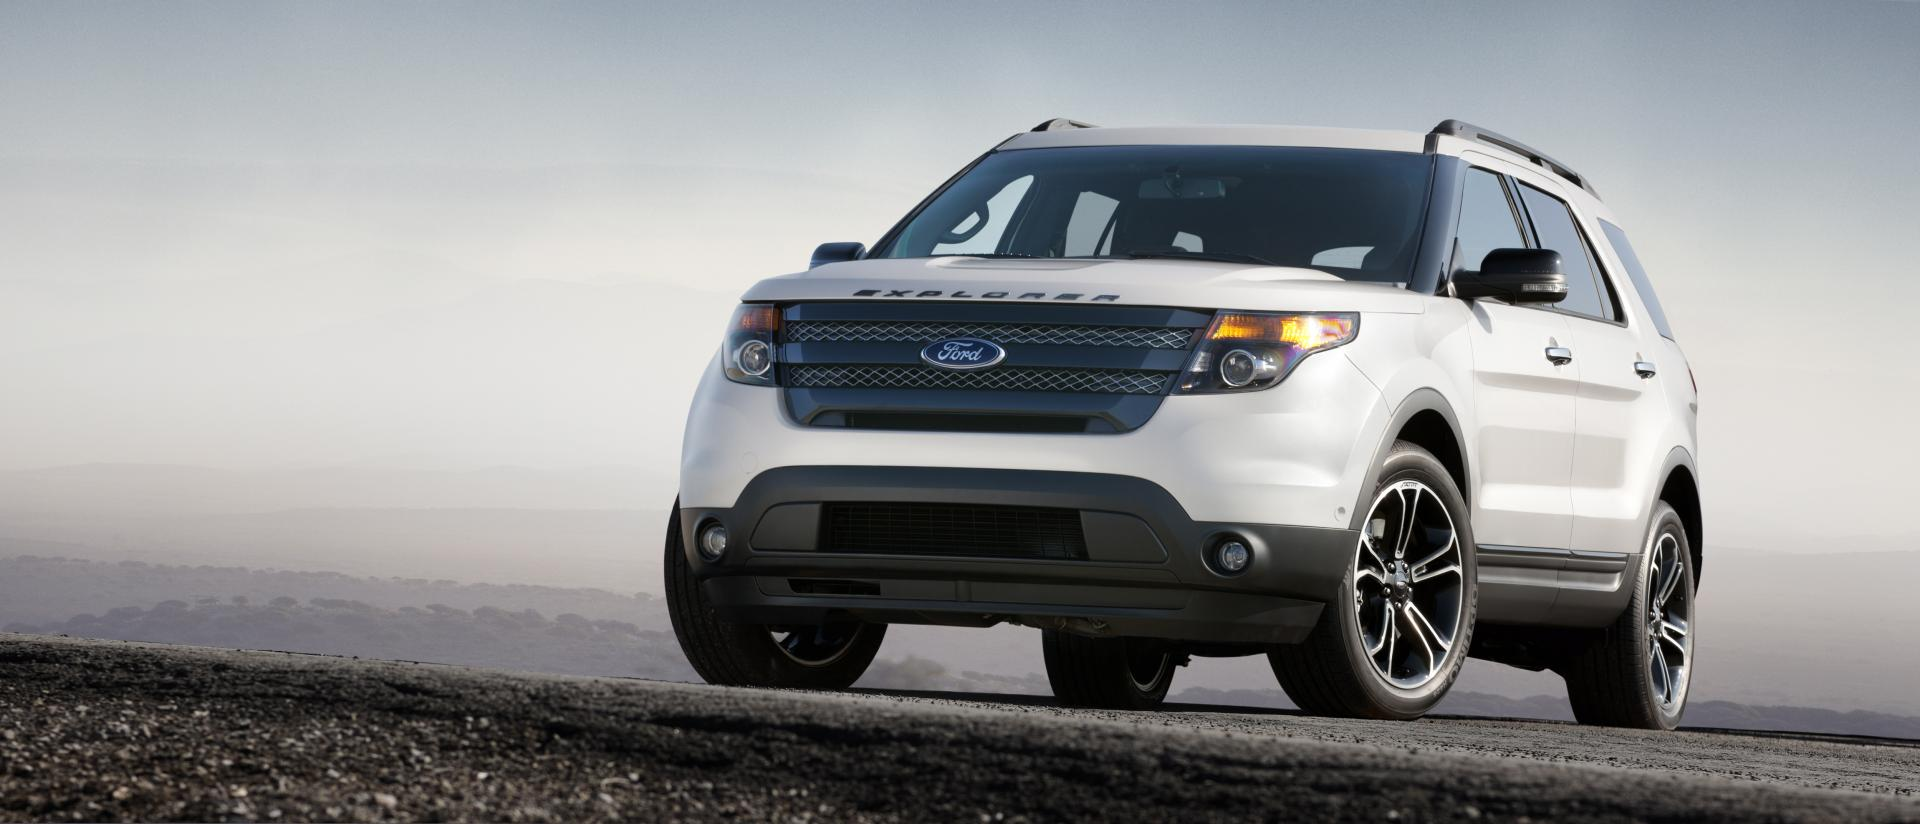 2013 ford explorer sport news and information